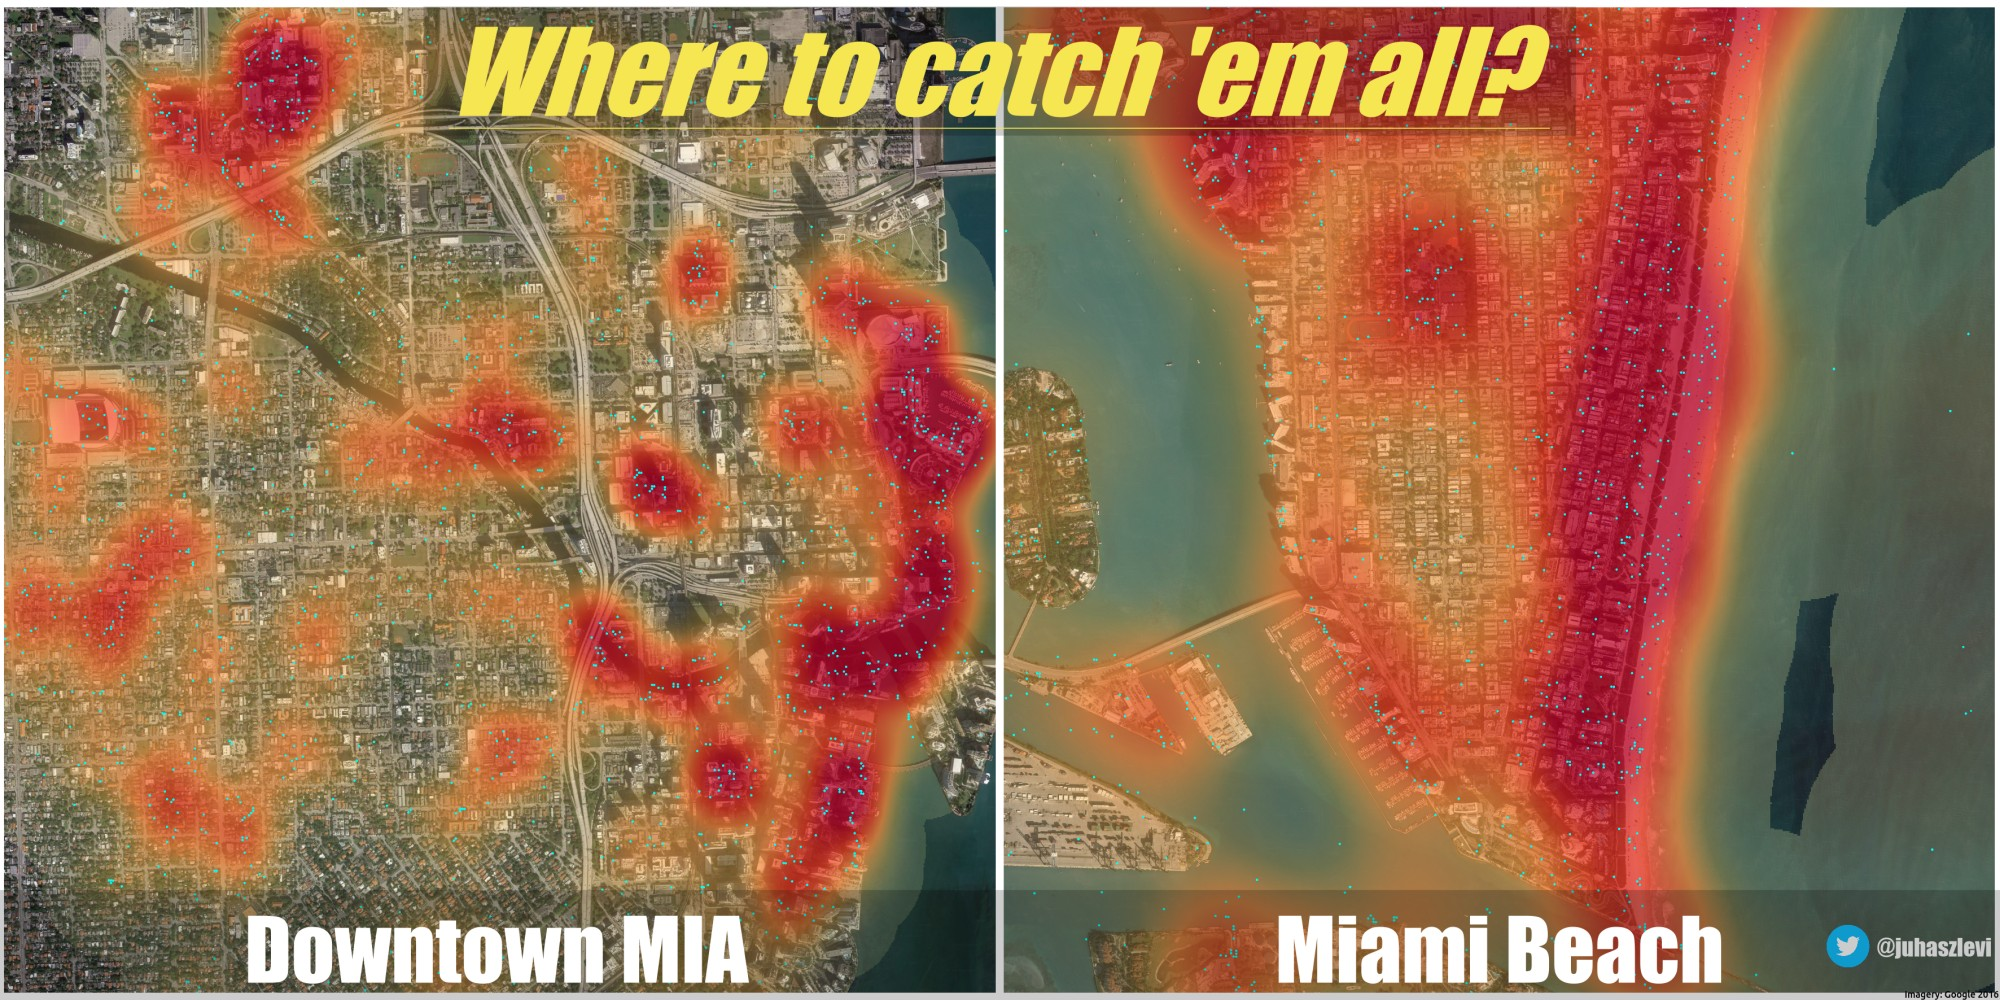 Pokemon locations and density in Miami